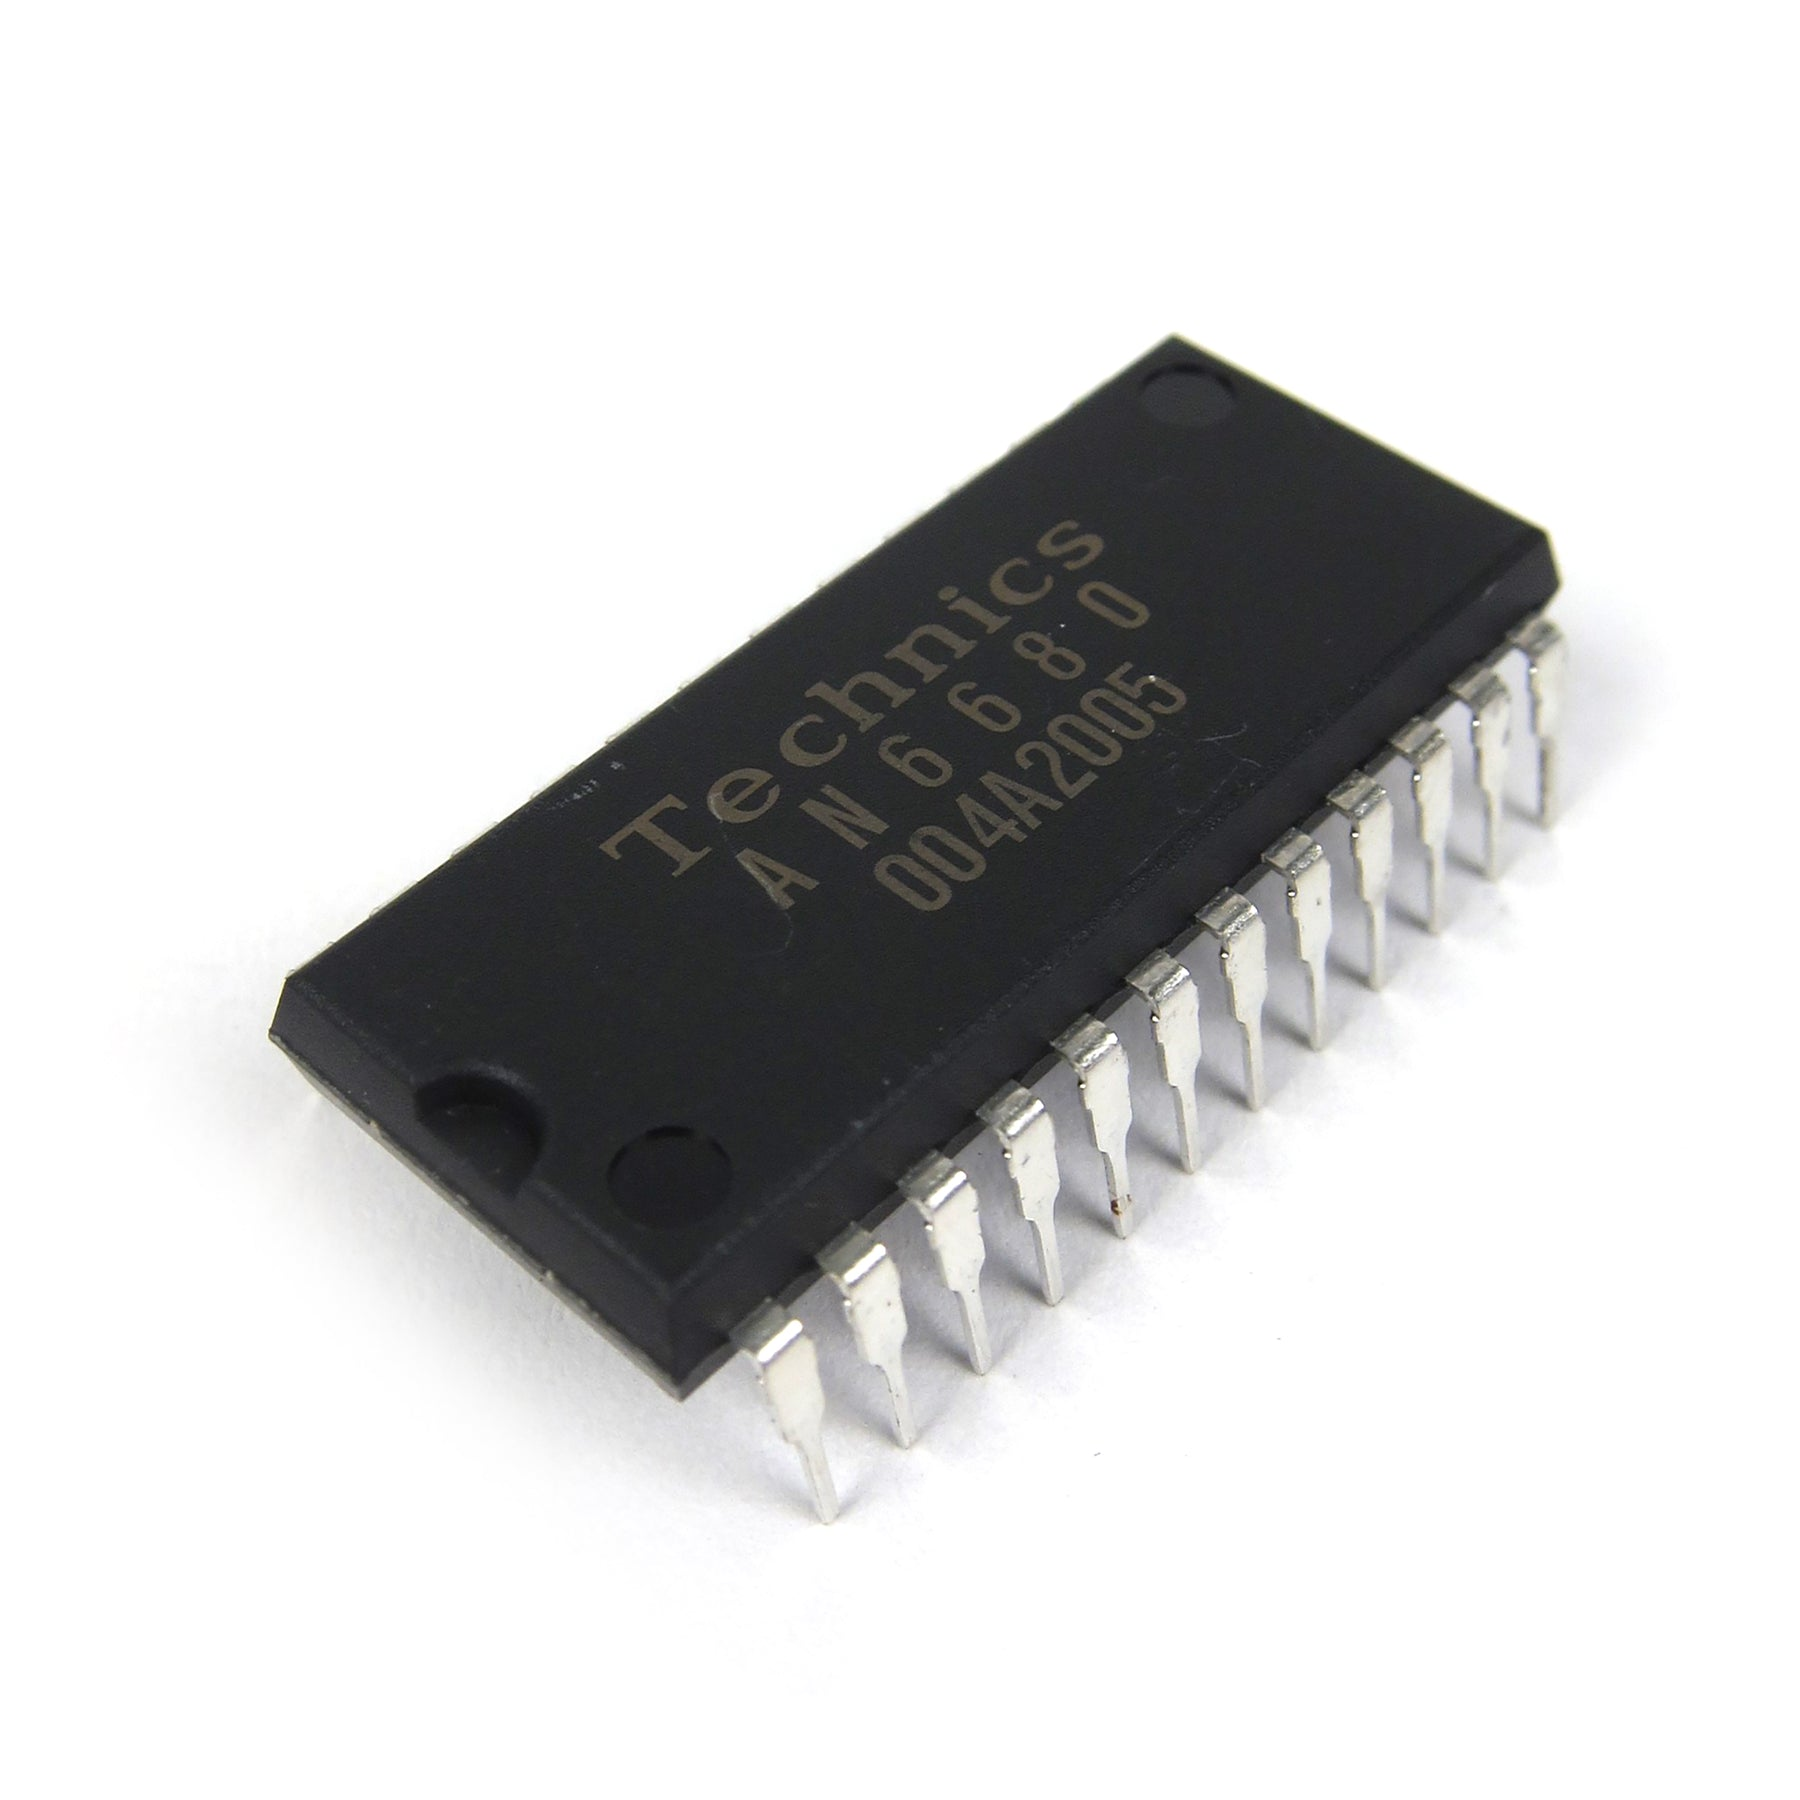 Technics Integrated Circuit Control Chip For 1200 An6680 Where To Buy Circuits